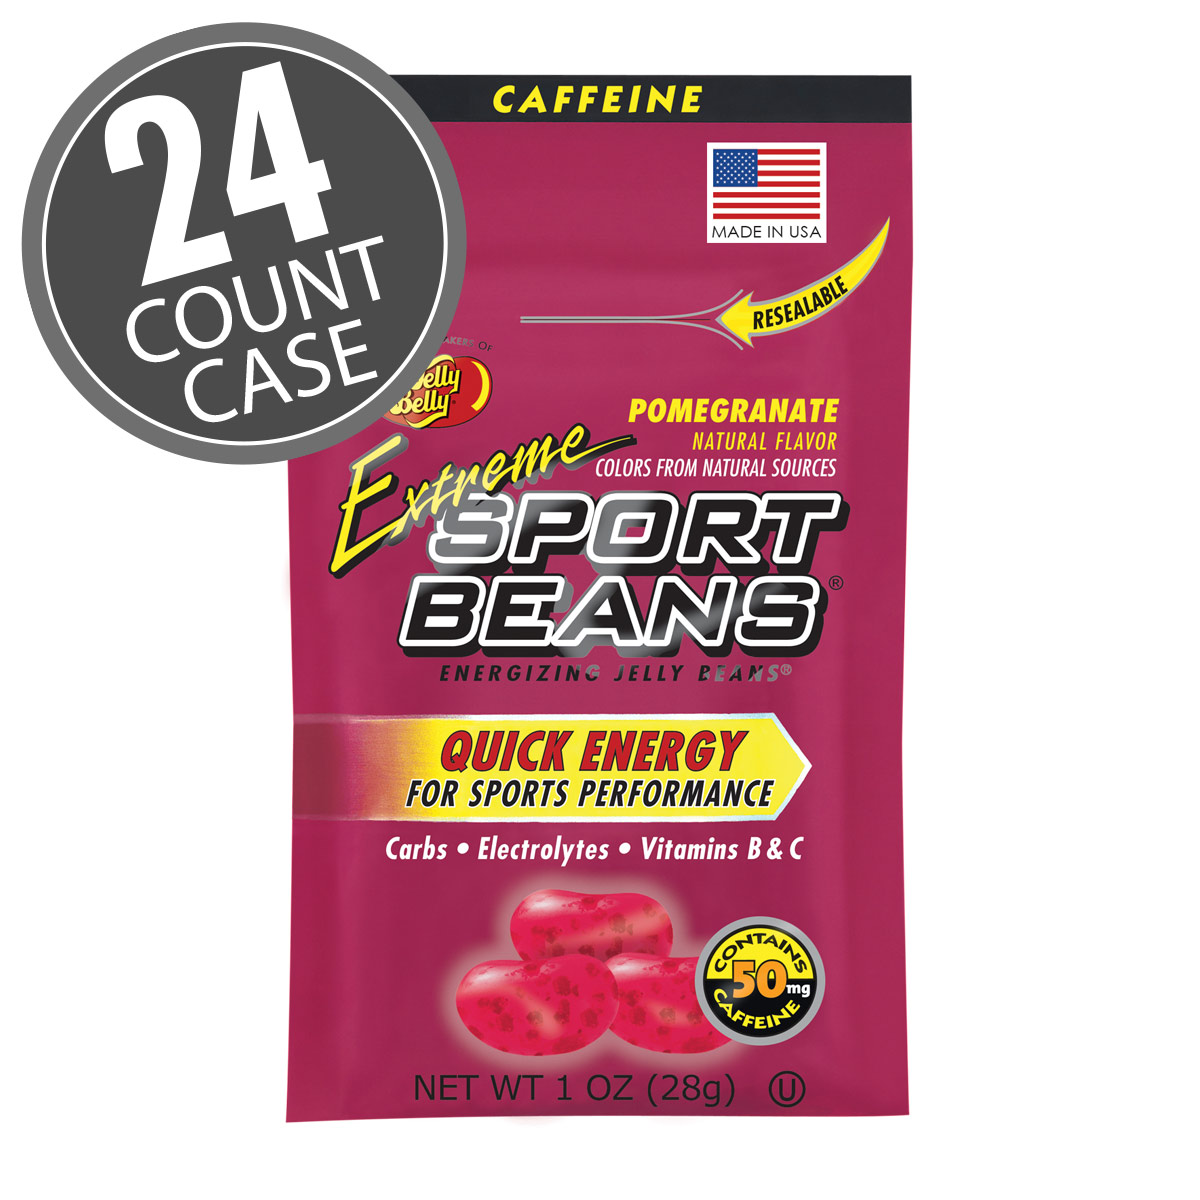 Extreme Sport Beans<sup>®</sup> Jelly Beans with CAFFEINE - Pomegranate 24-Pack